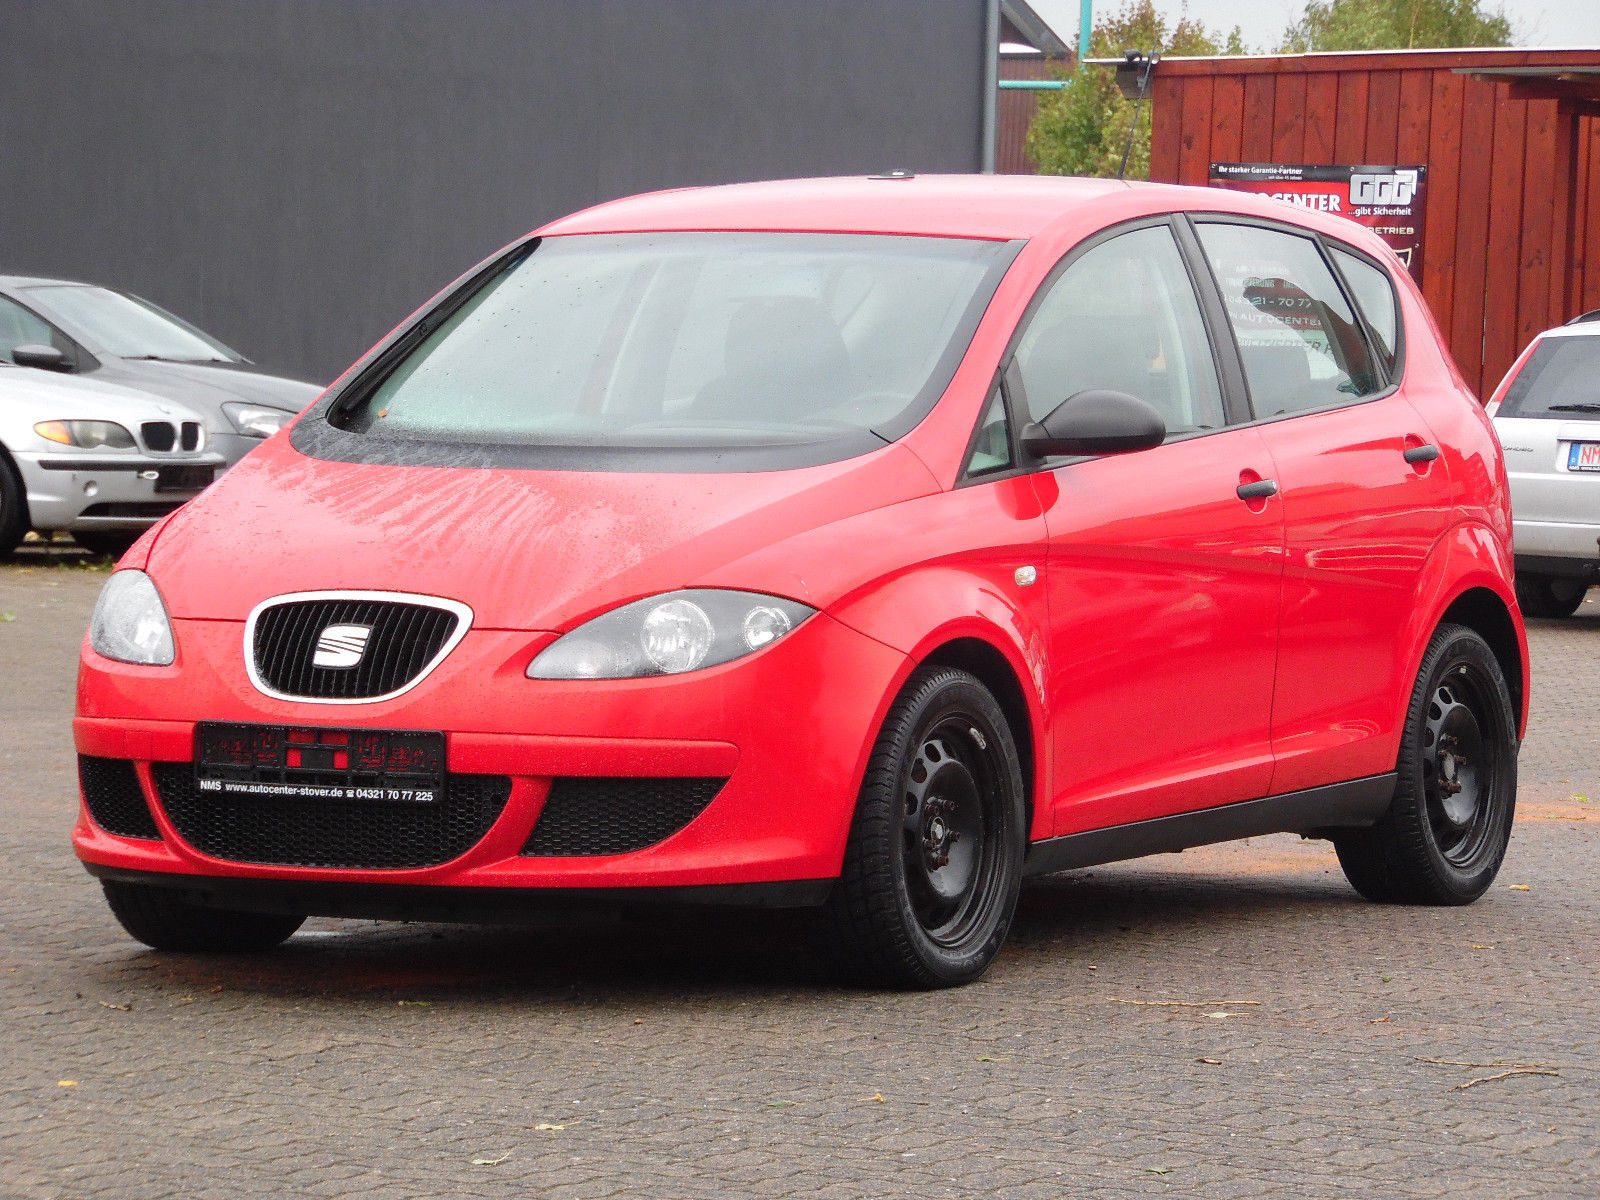 SEAT Altea 1.9 TDI Reference